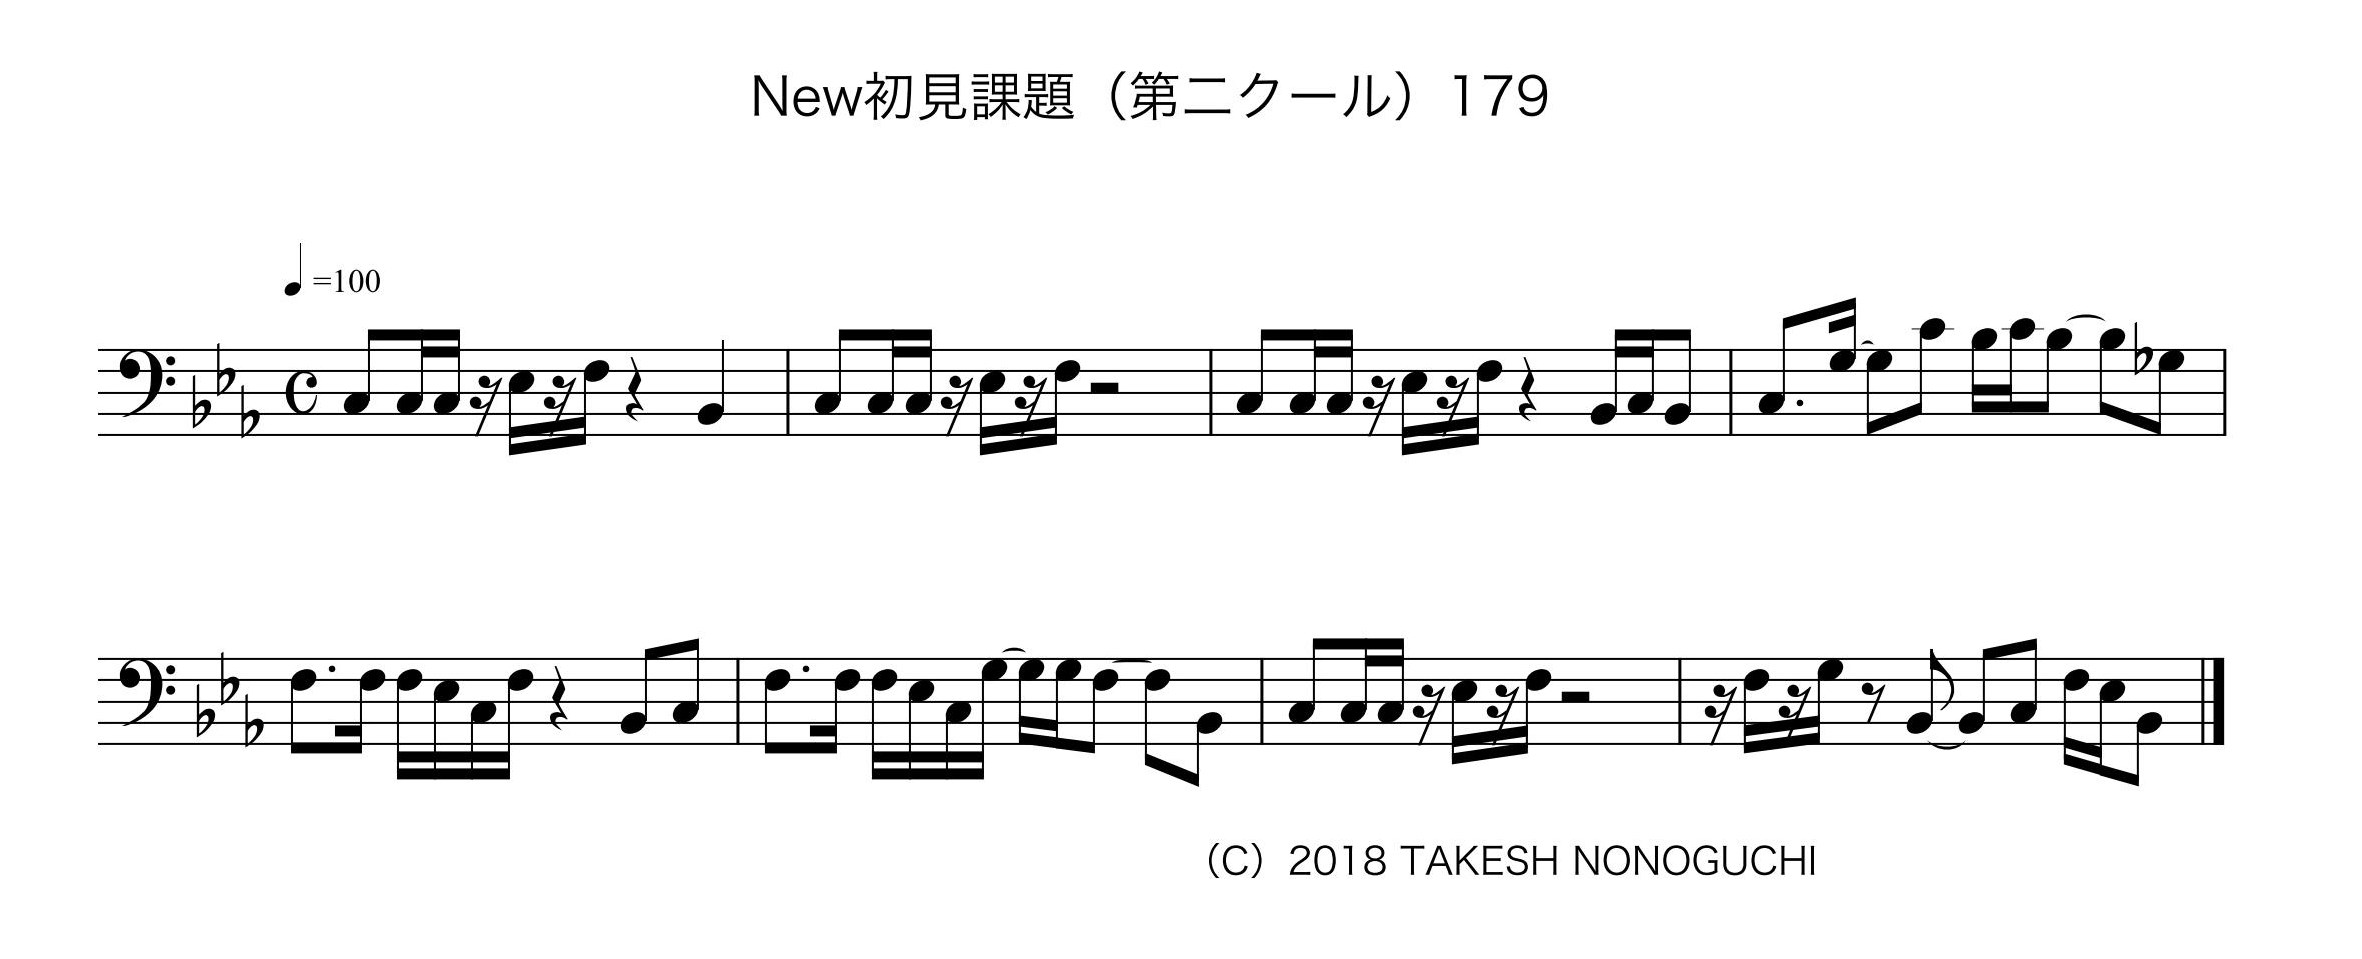 NEW初見課題(第二クール)NO.179